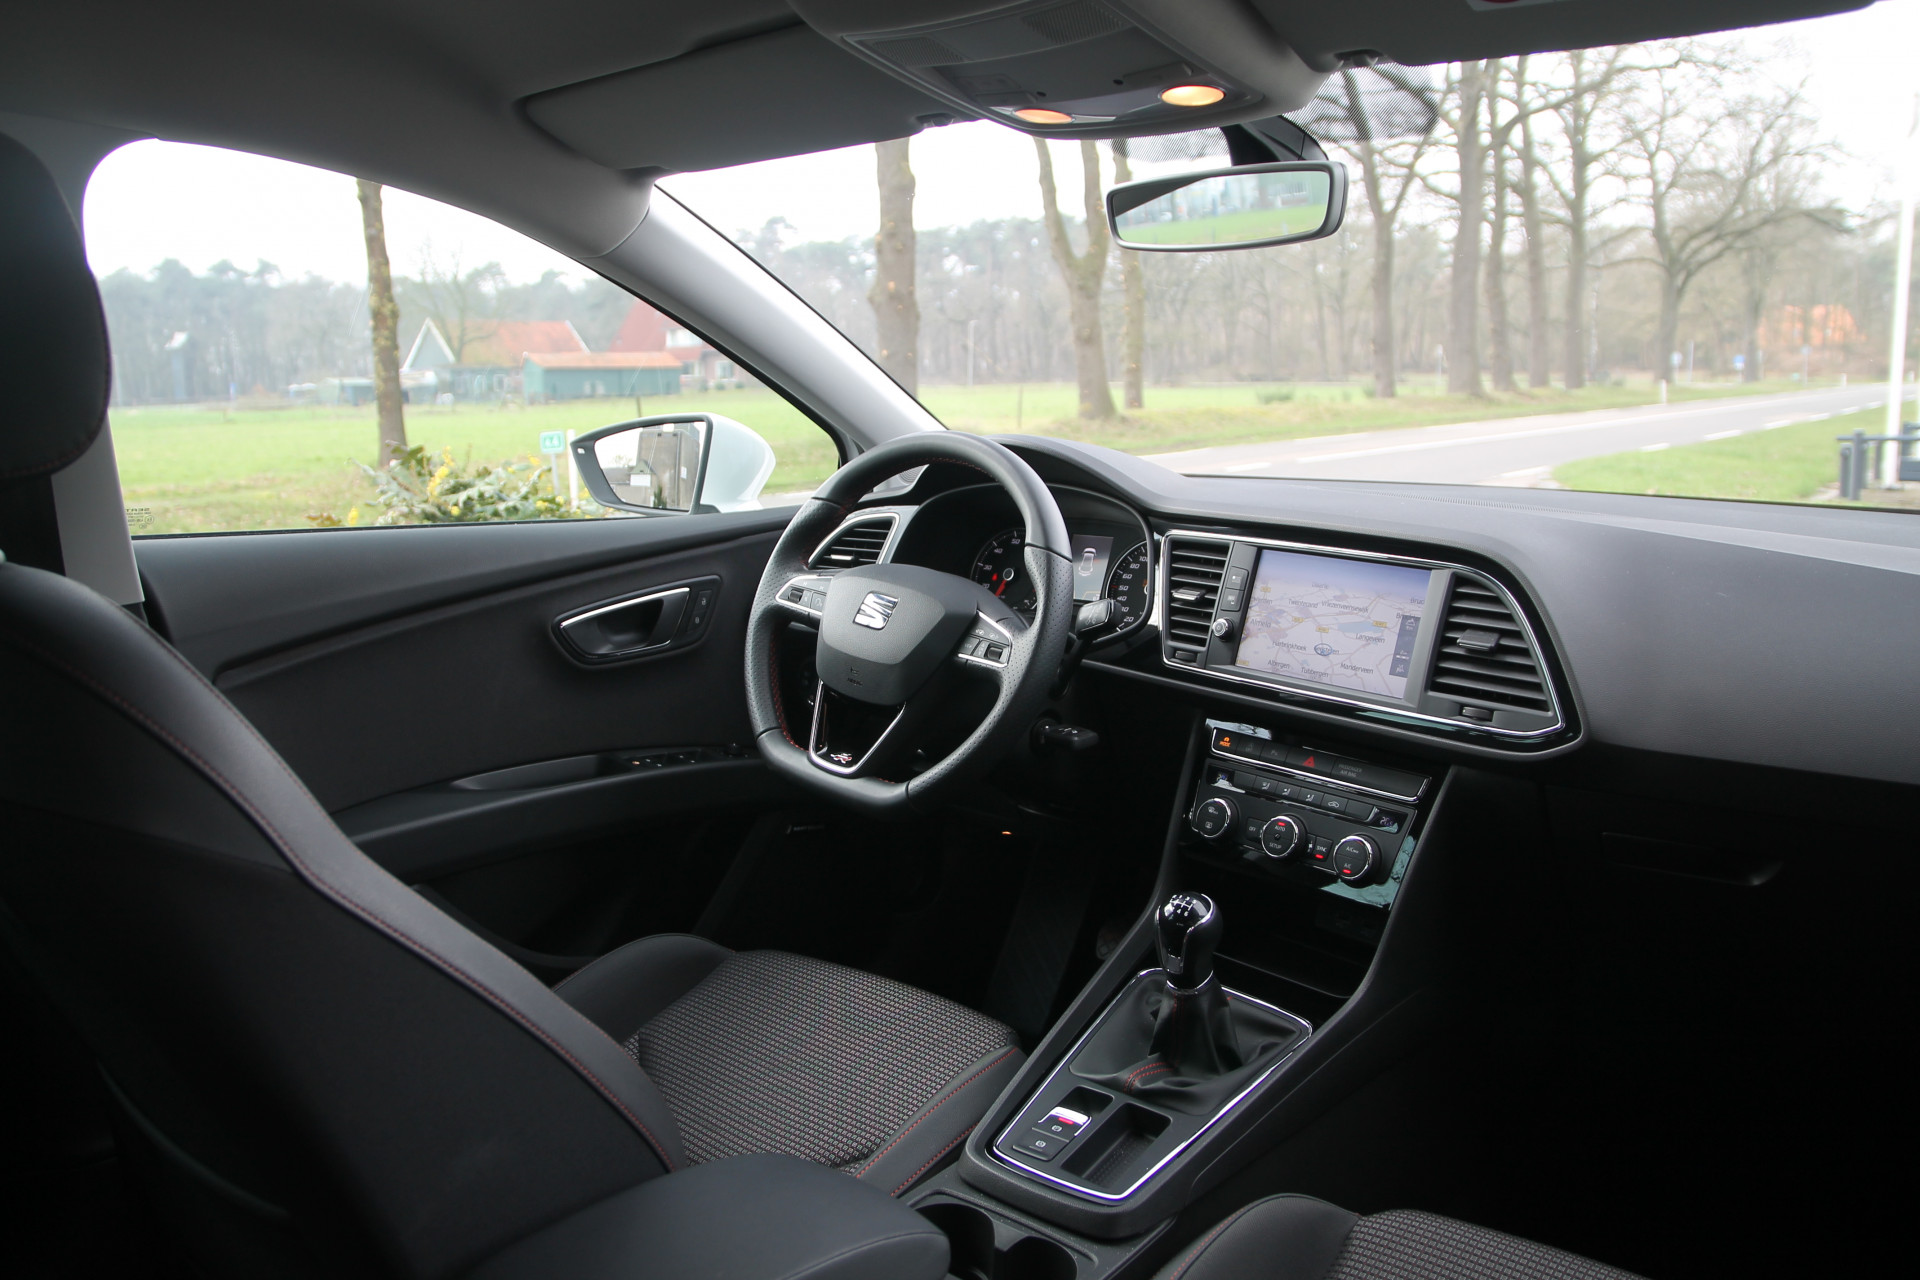 Tweedehands Seat Leon 1.4 TSI FR occasion